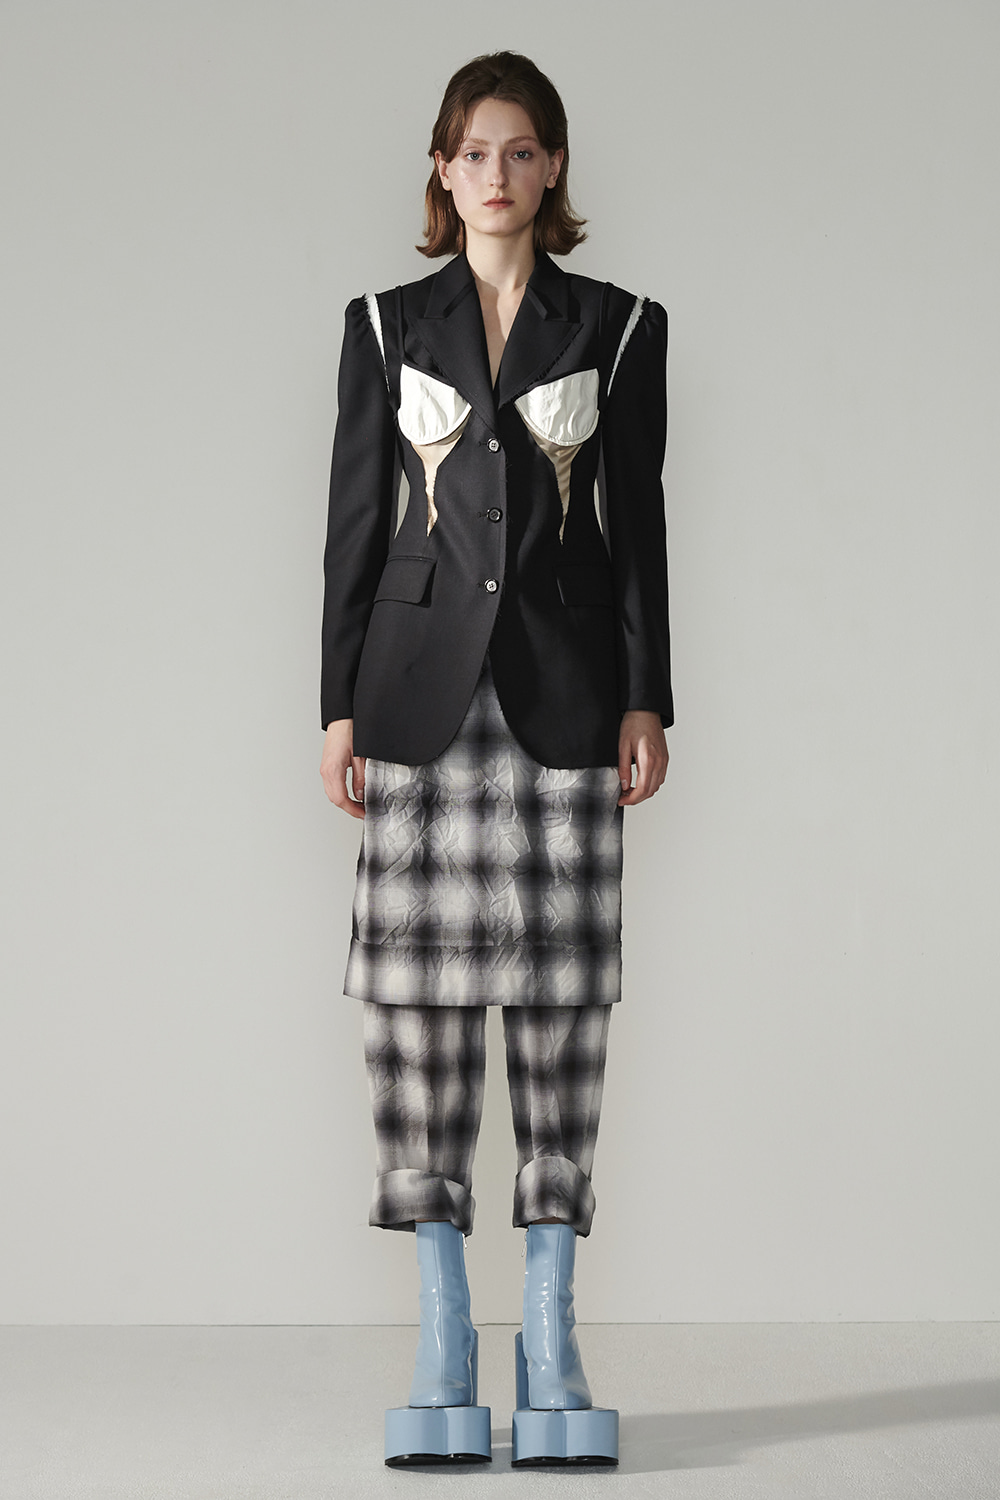 SS21 FRONT SKIRT LAYERED CHECK PANTS